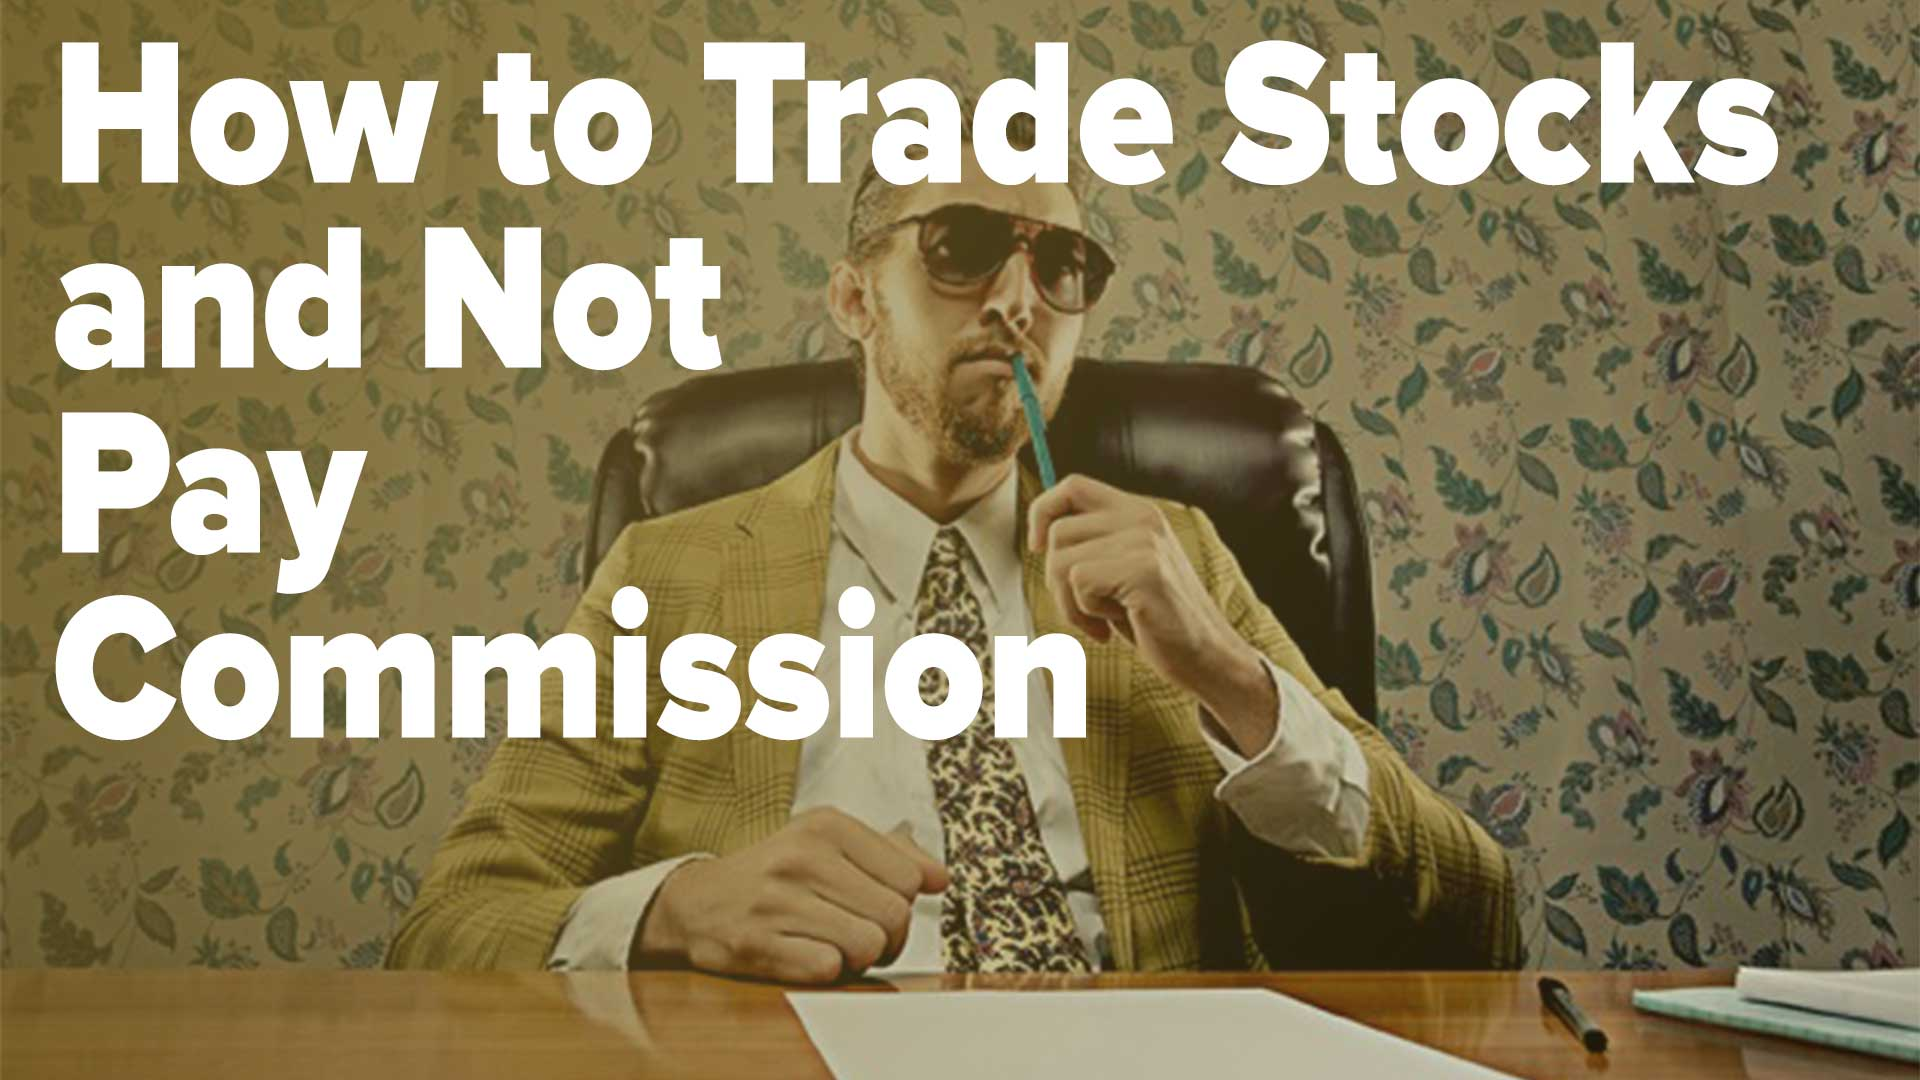 How to Trade Stocks and Not Pay Commission